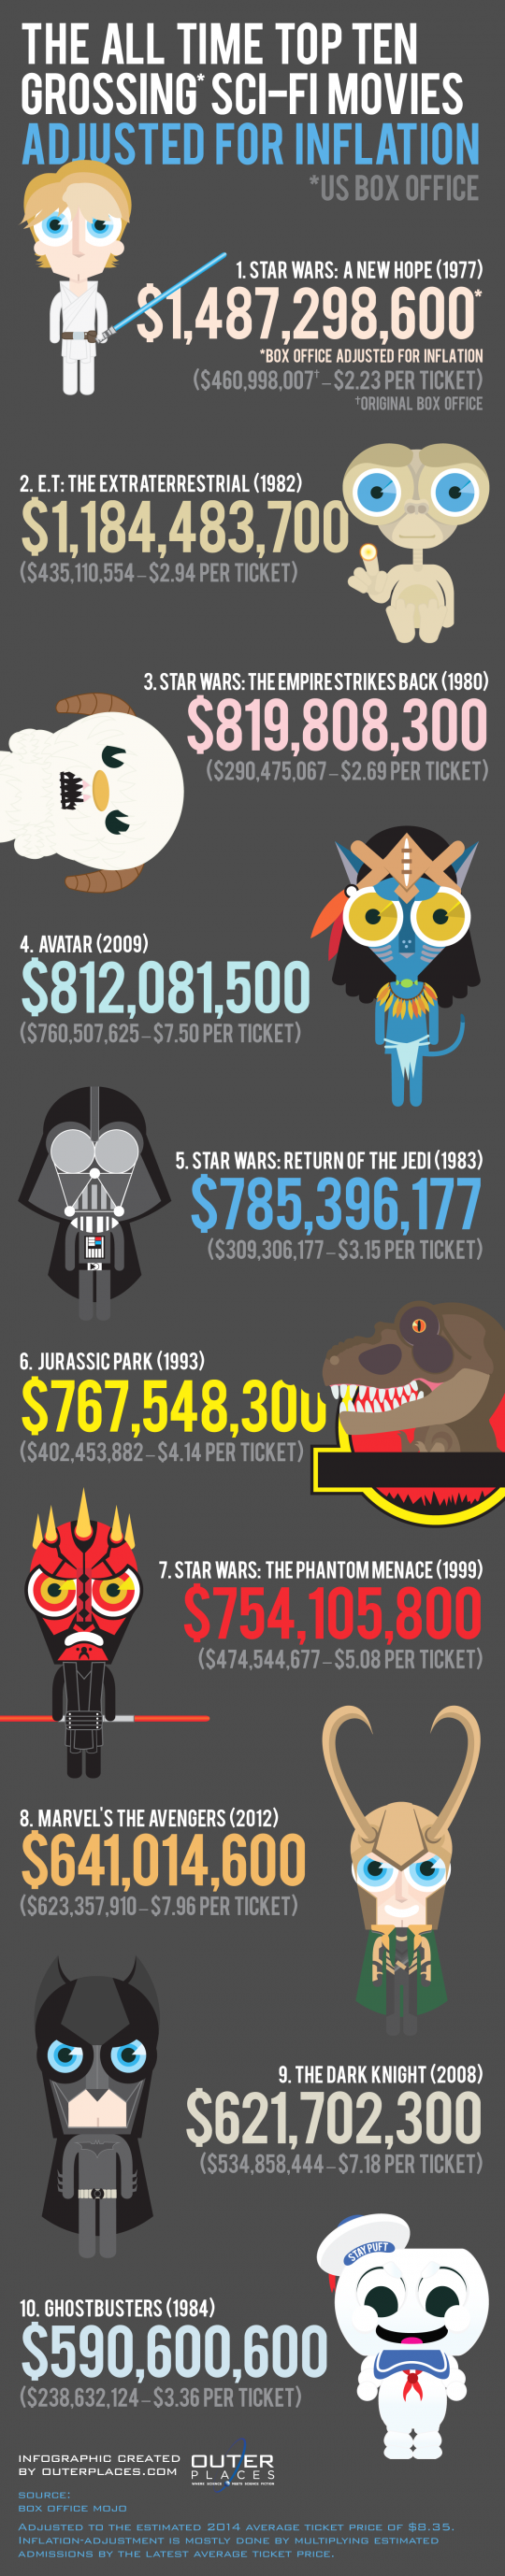 The All Time Top Ten Grossing Sci-Fi Movies Adjusted For Inflation